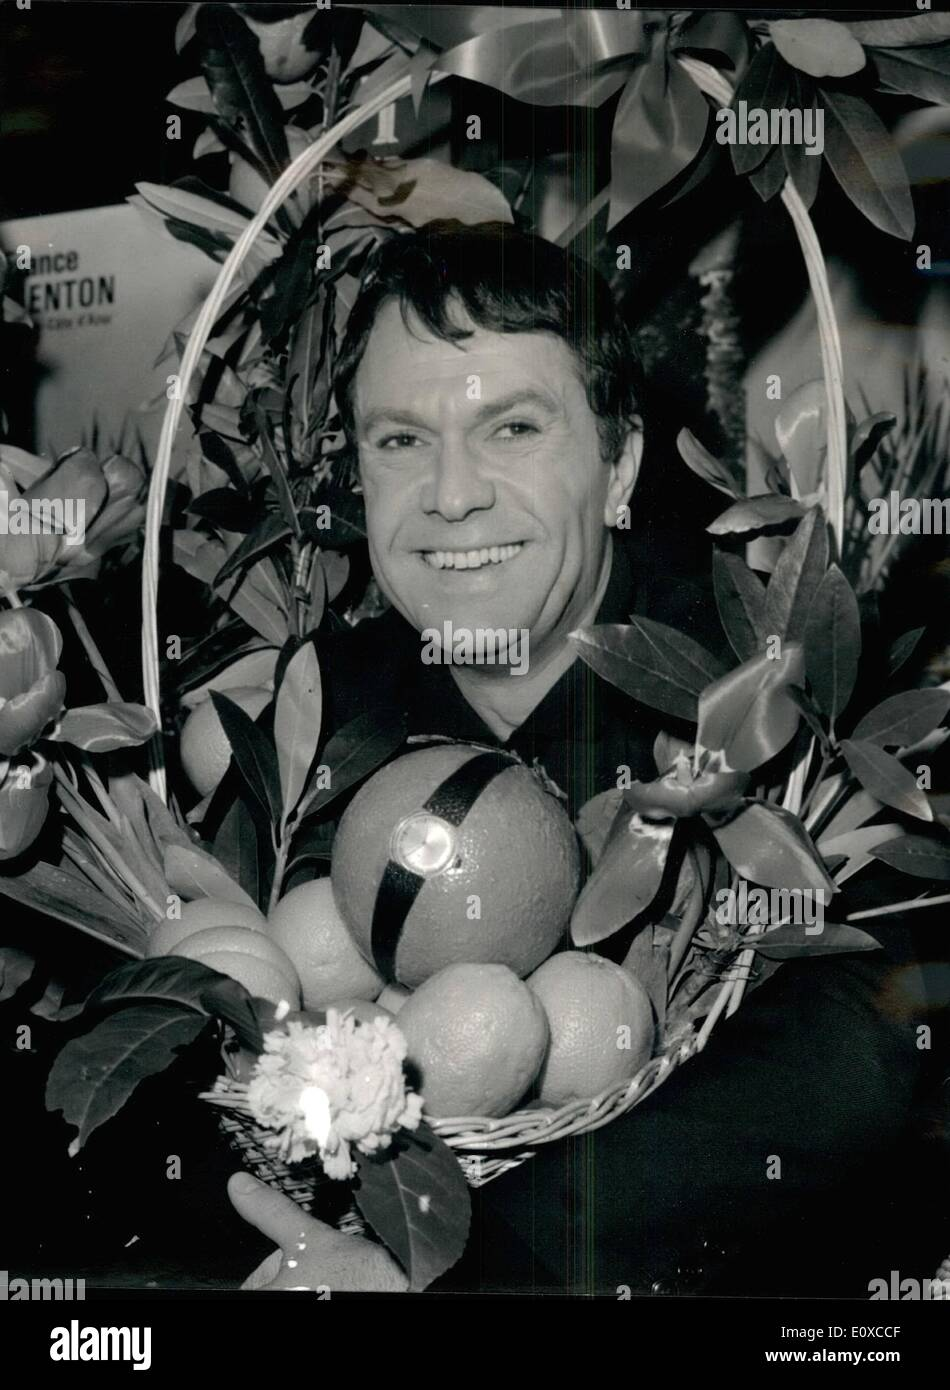 Apr. 04, 1966 - Robert Hirsch (''Never on a Saturday'') awarded 'orange' prize: Robert Hirsch, the famous French stage and screen comedian (who held 13 Different roles in Never cn a Saturday) was awarded the 'orange' prize for courtesy in his relationship with the press. Photo shows Robert Hirsch with a basketful of oranges. - Stock Image